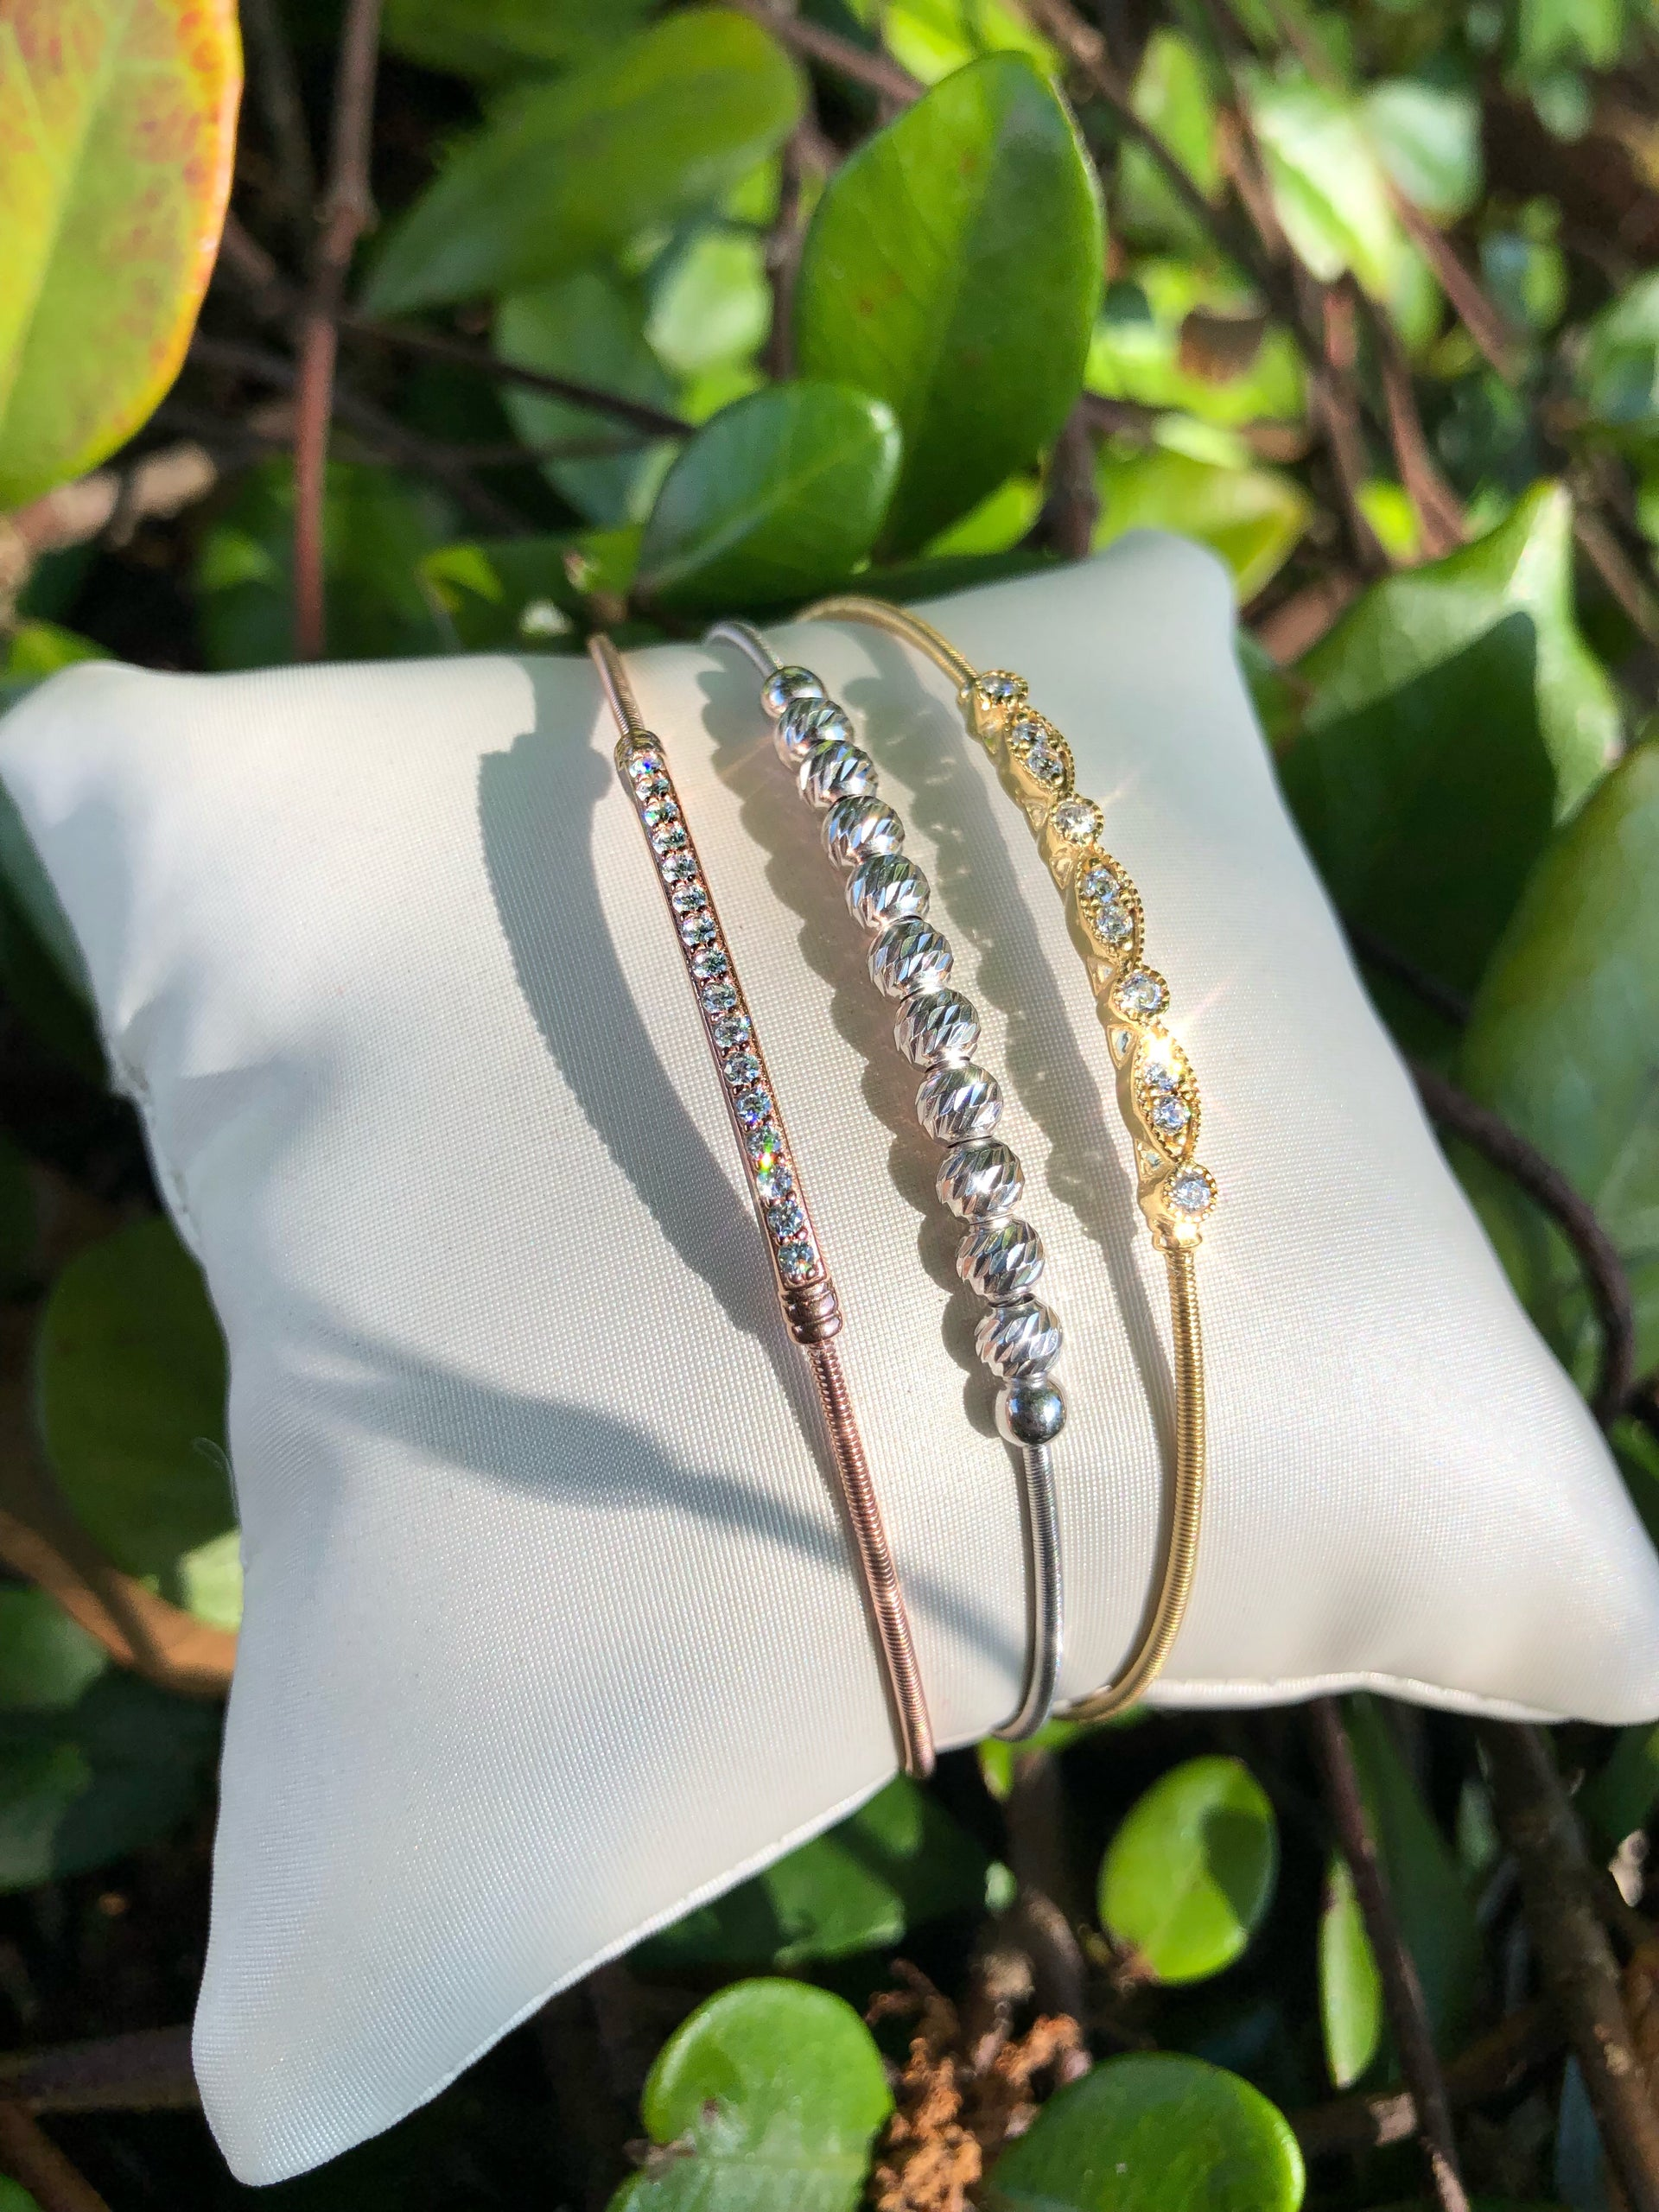 Gold Finish Bella Cavo Italian Cable Bracelet with Marquise Cluster Simulated Diamond Accents